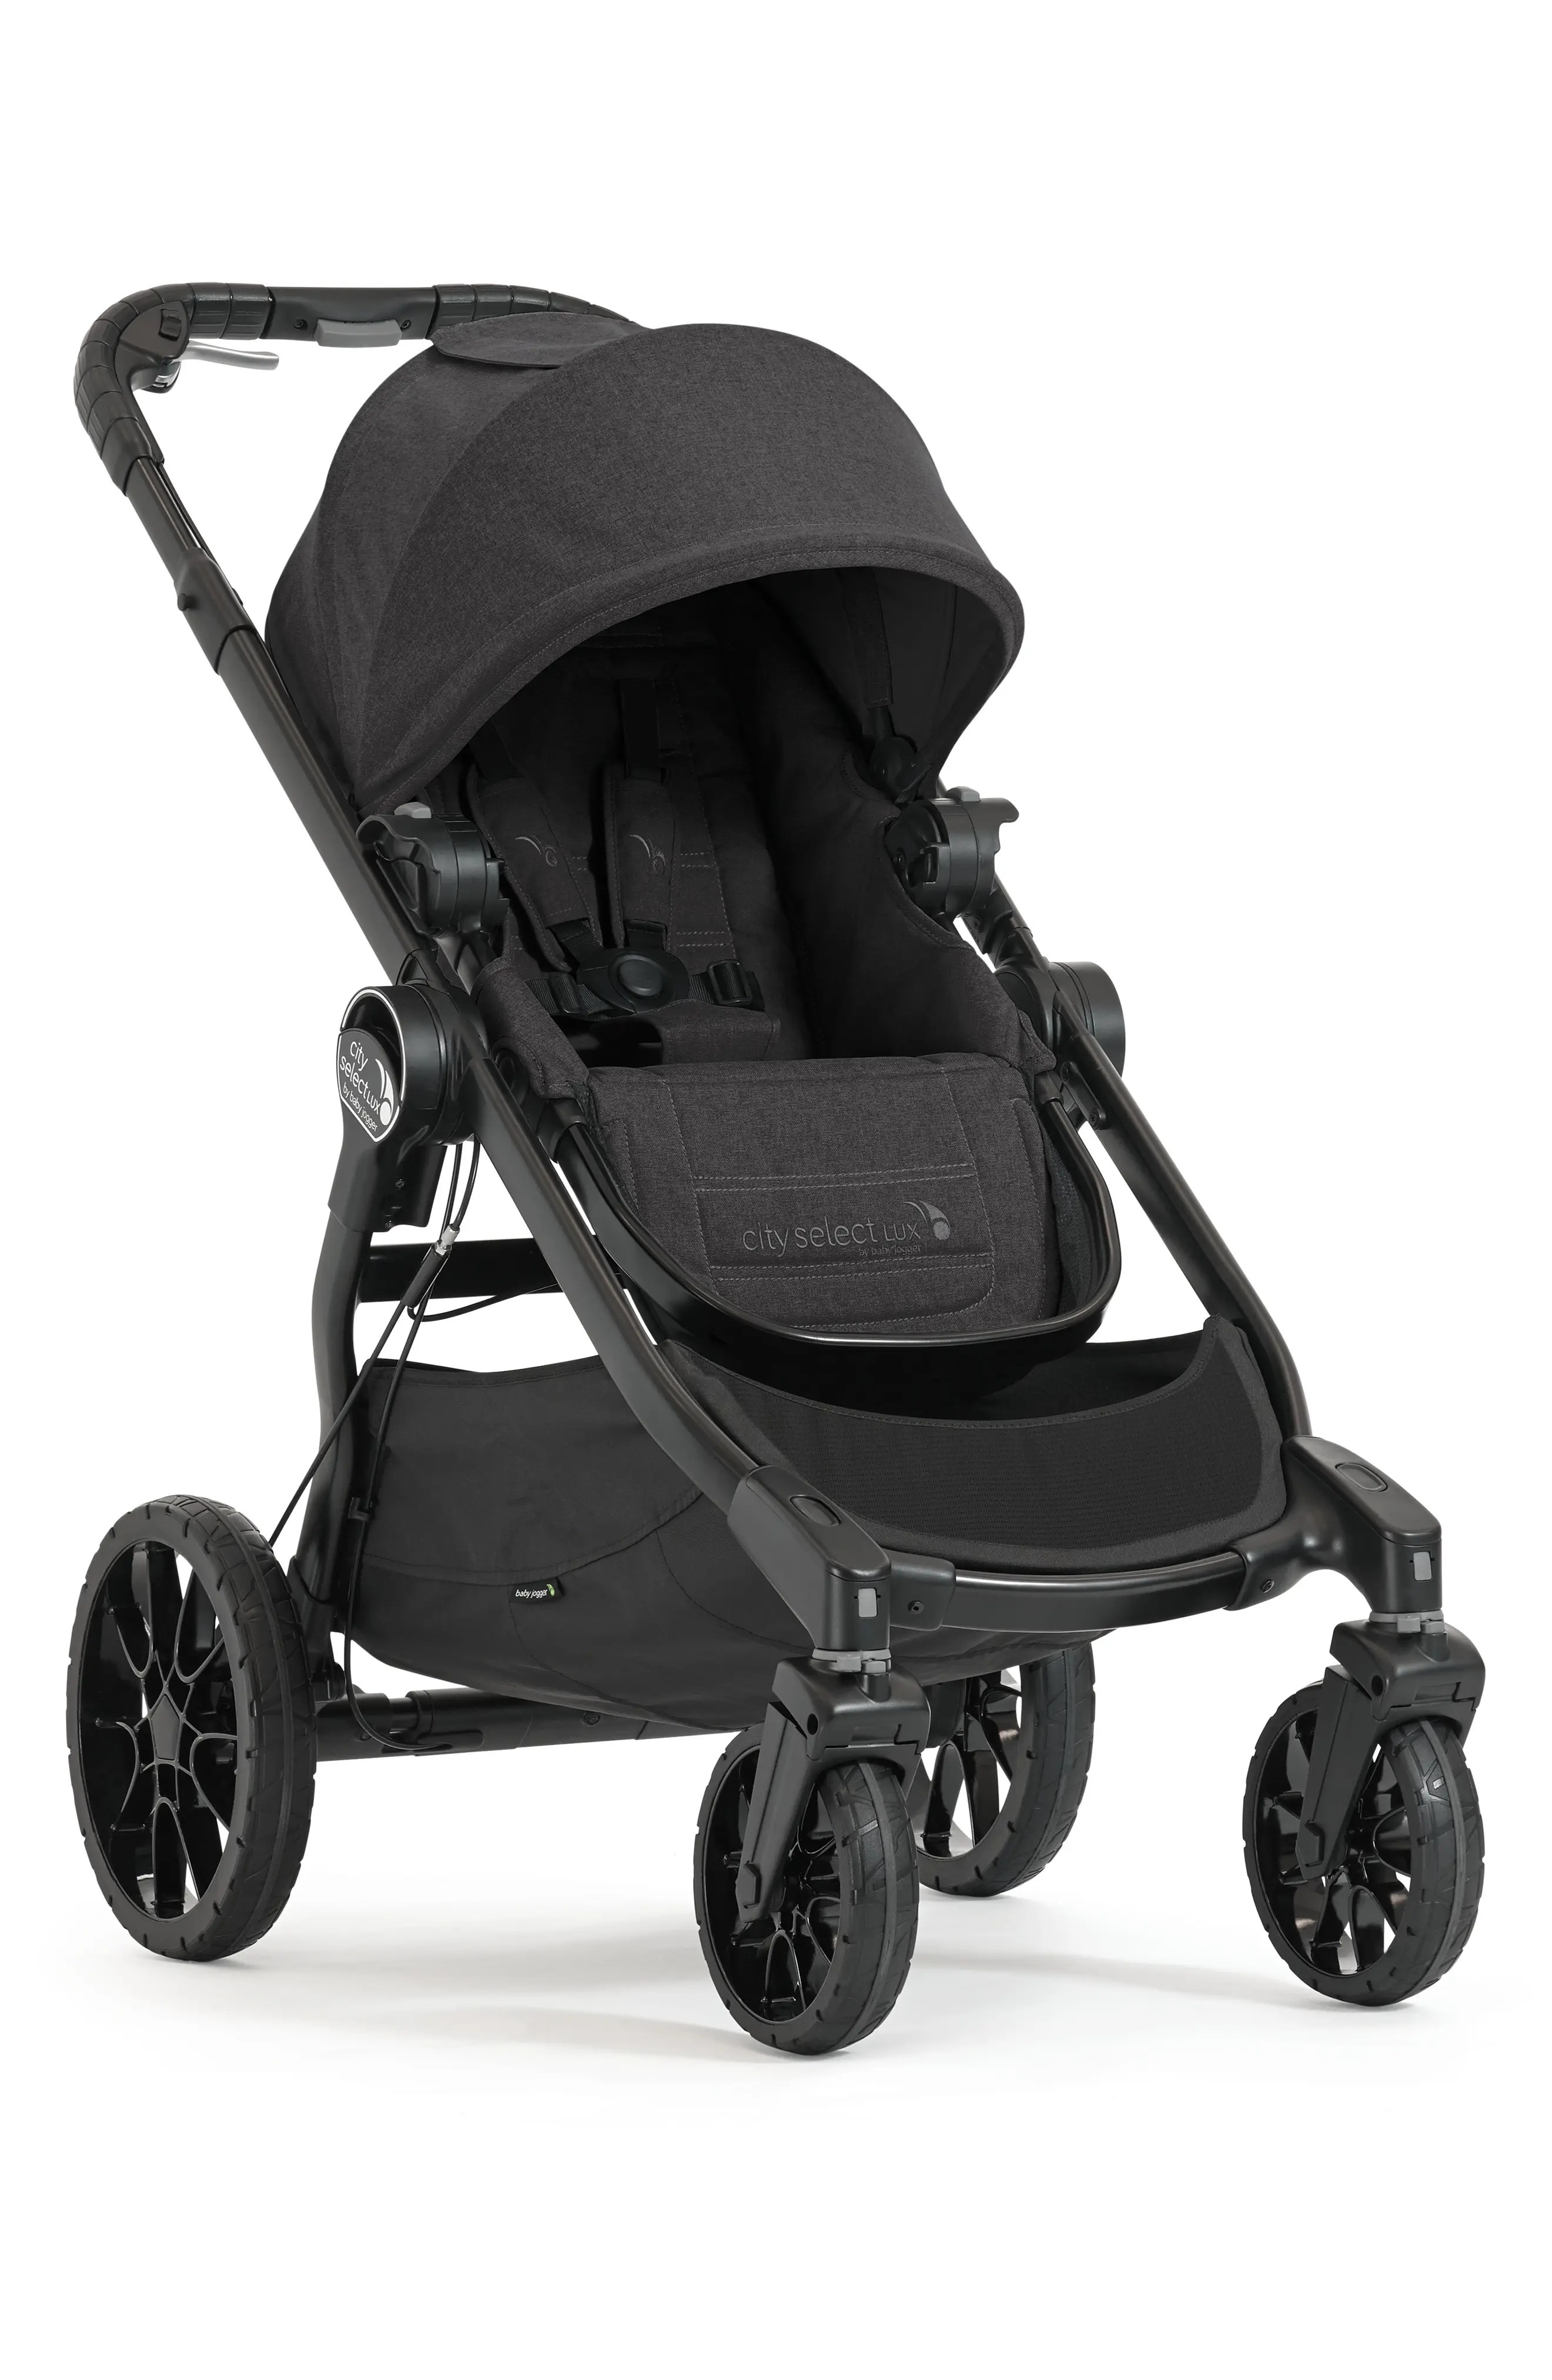 Oyster Double Pram Mothercare Where To Buy The Best Buggies For Twins Pushchairs Uk 2019